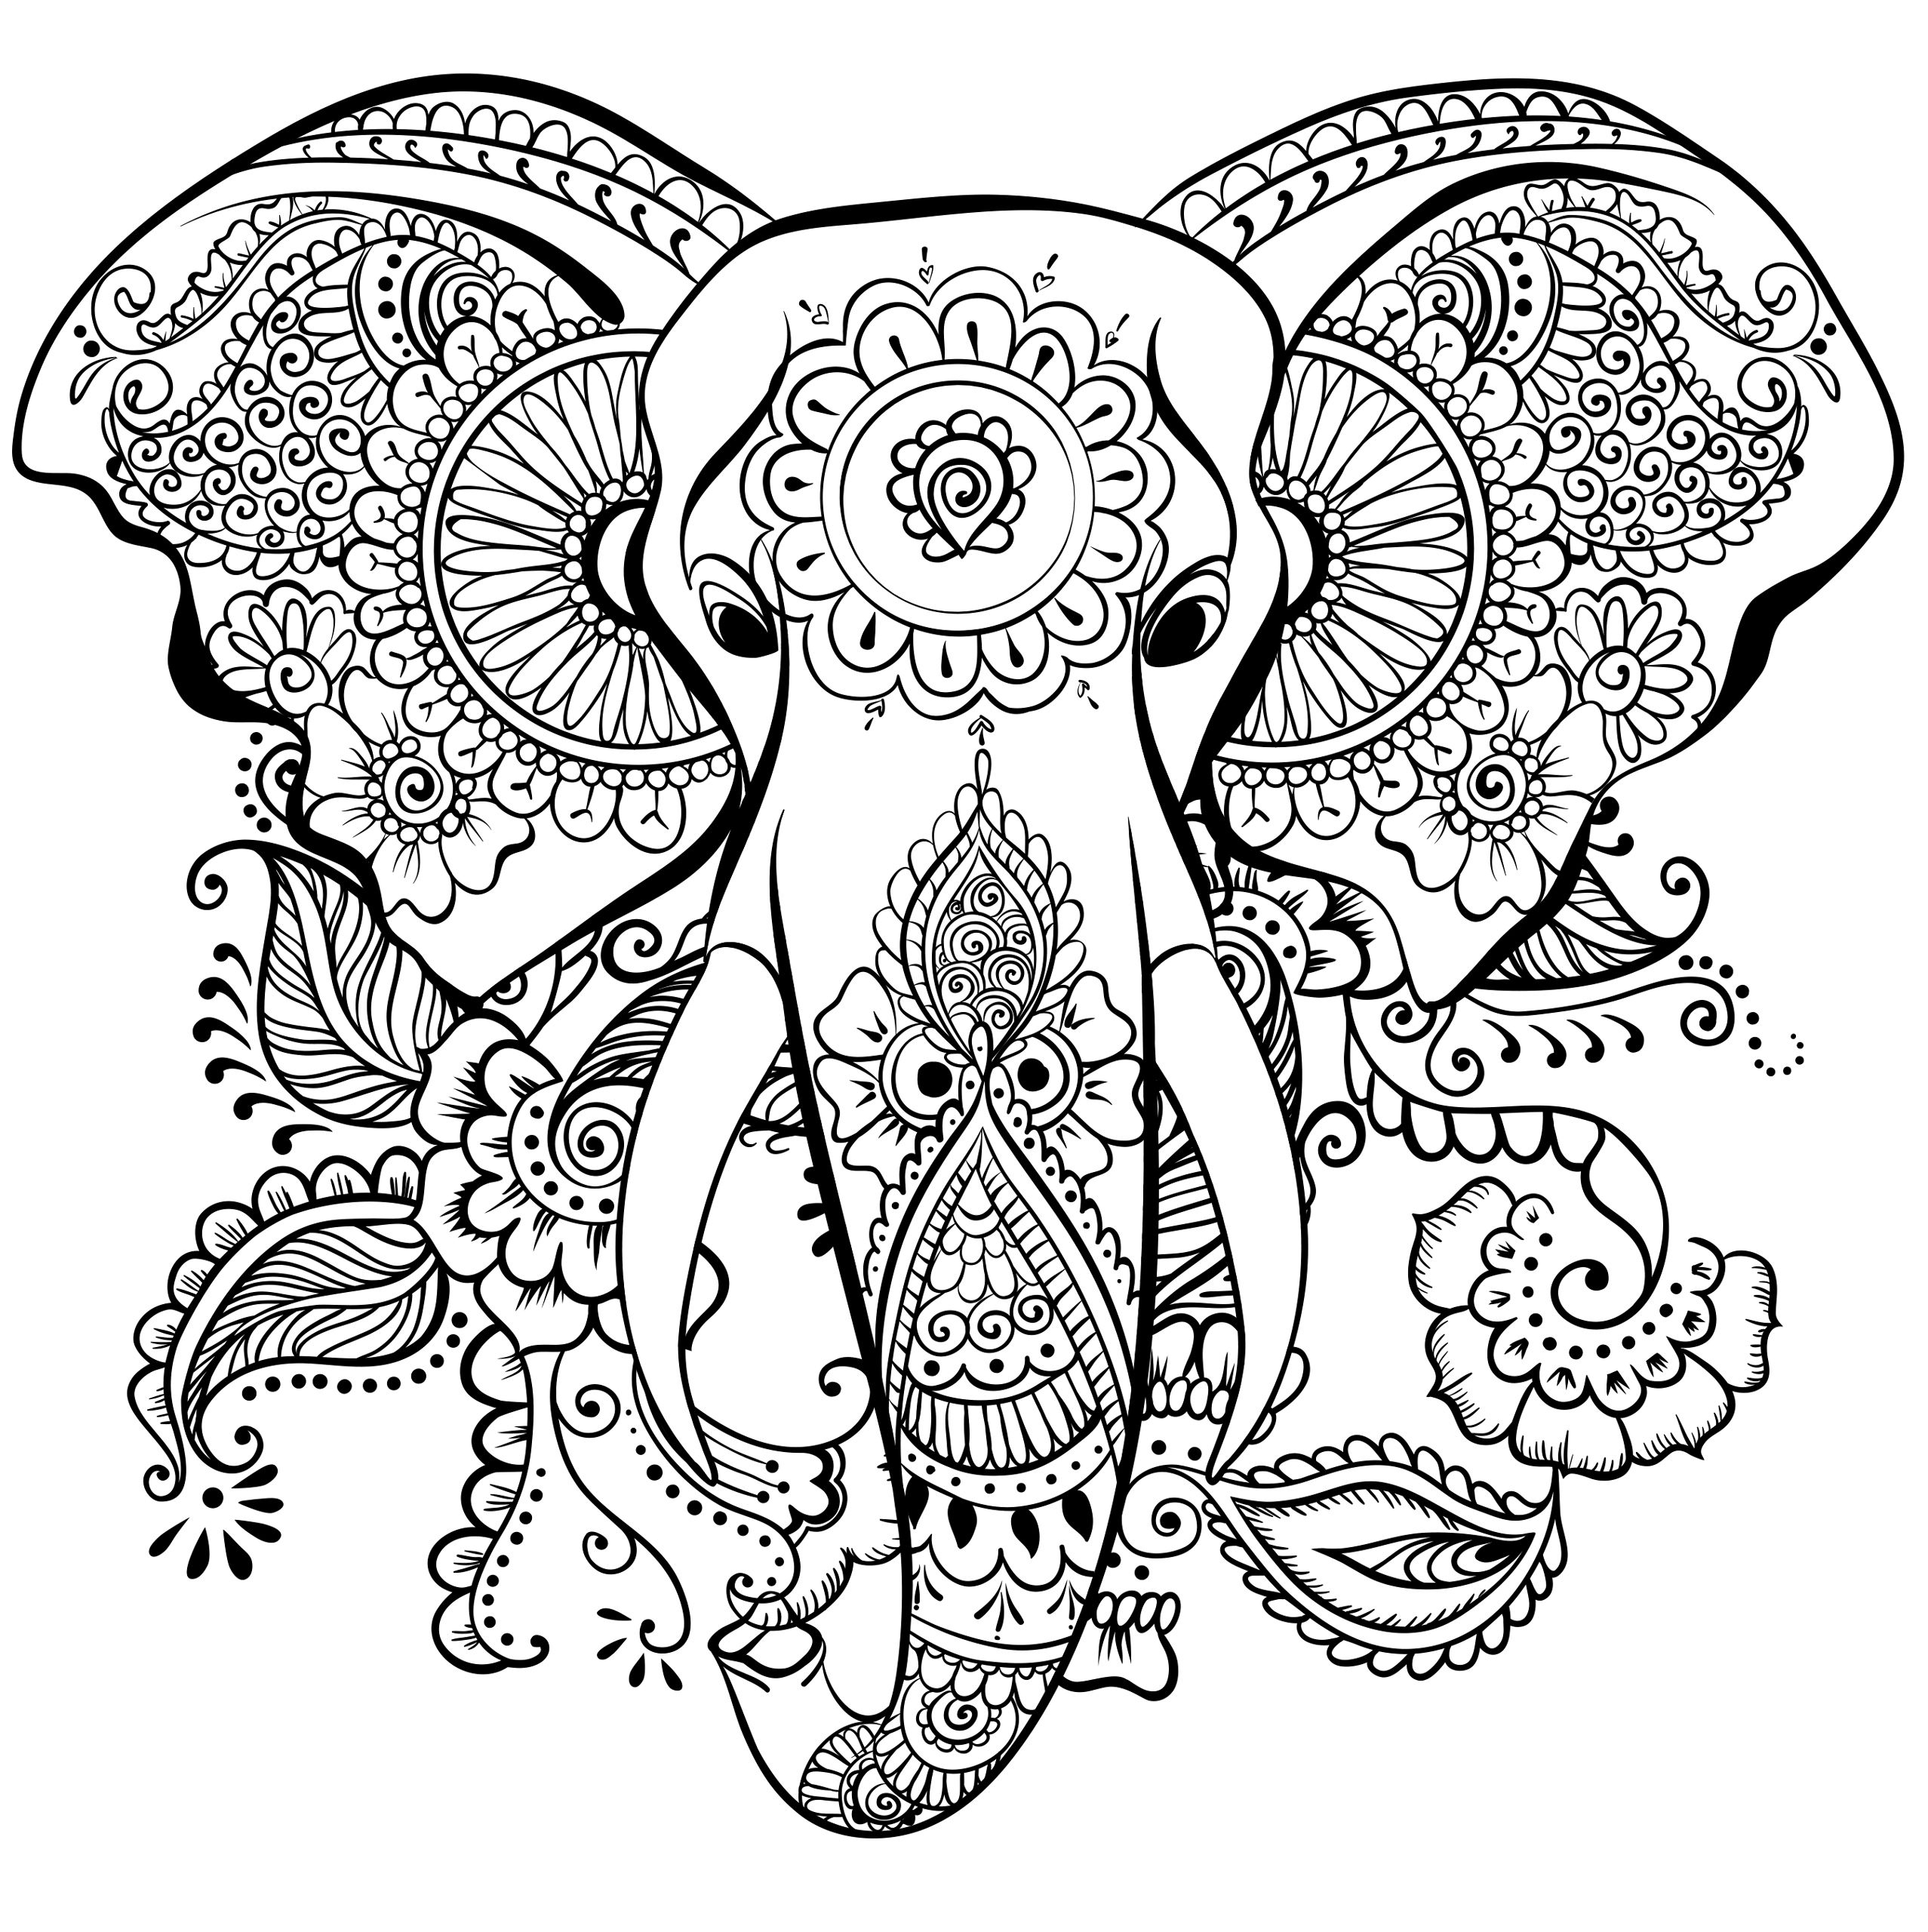 - 21+ Excellent Photo Of Cool Coloring Pages - Birijus.com